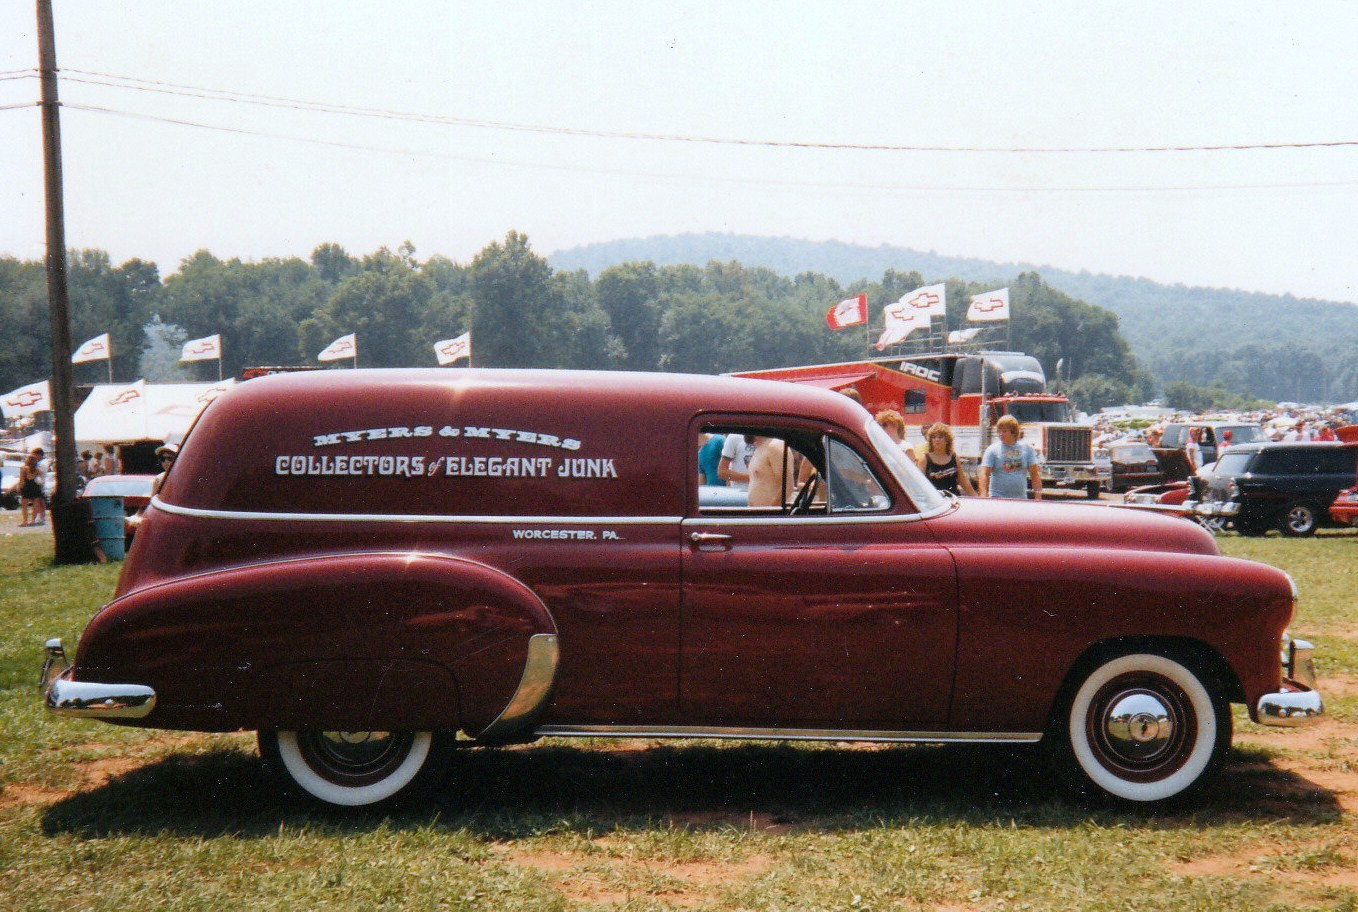 Truck 1949 chevy panel truck : File:1949 Chevy Sedan delivery.jpg - Wikimedia Commons